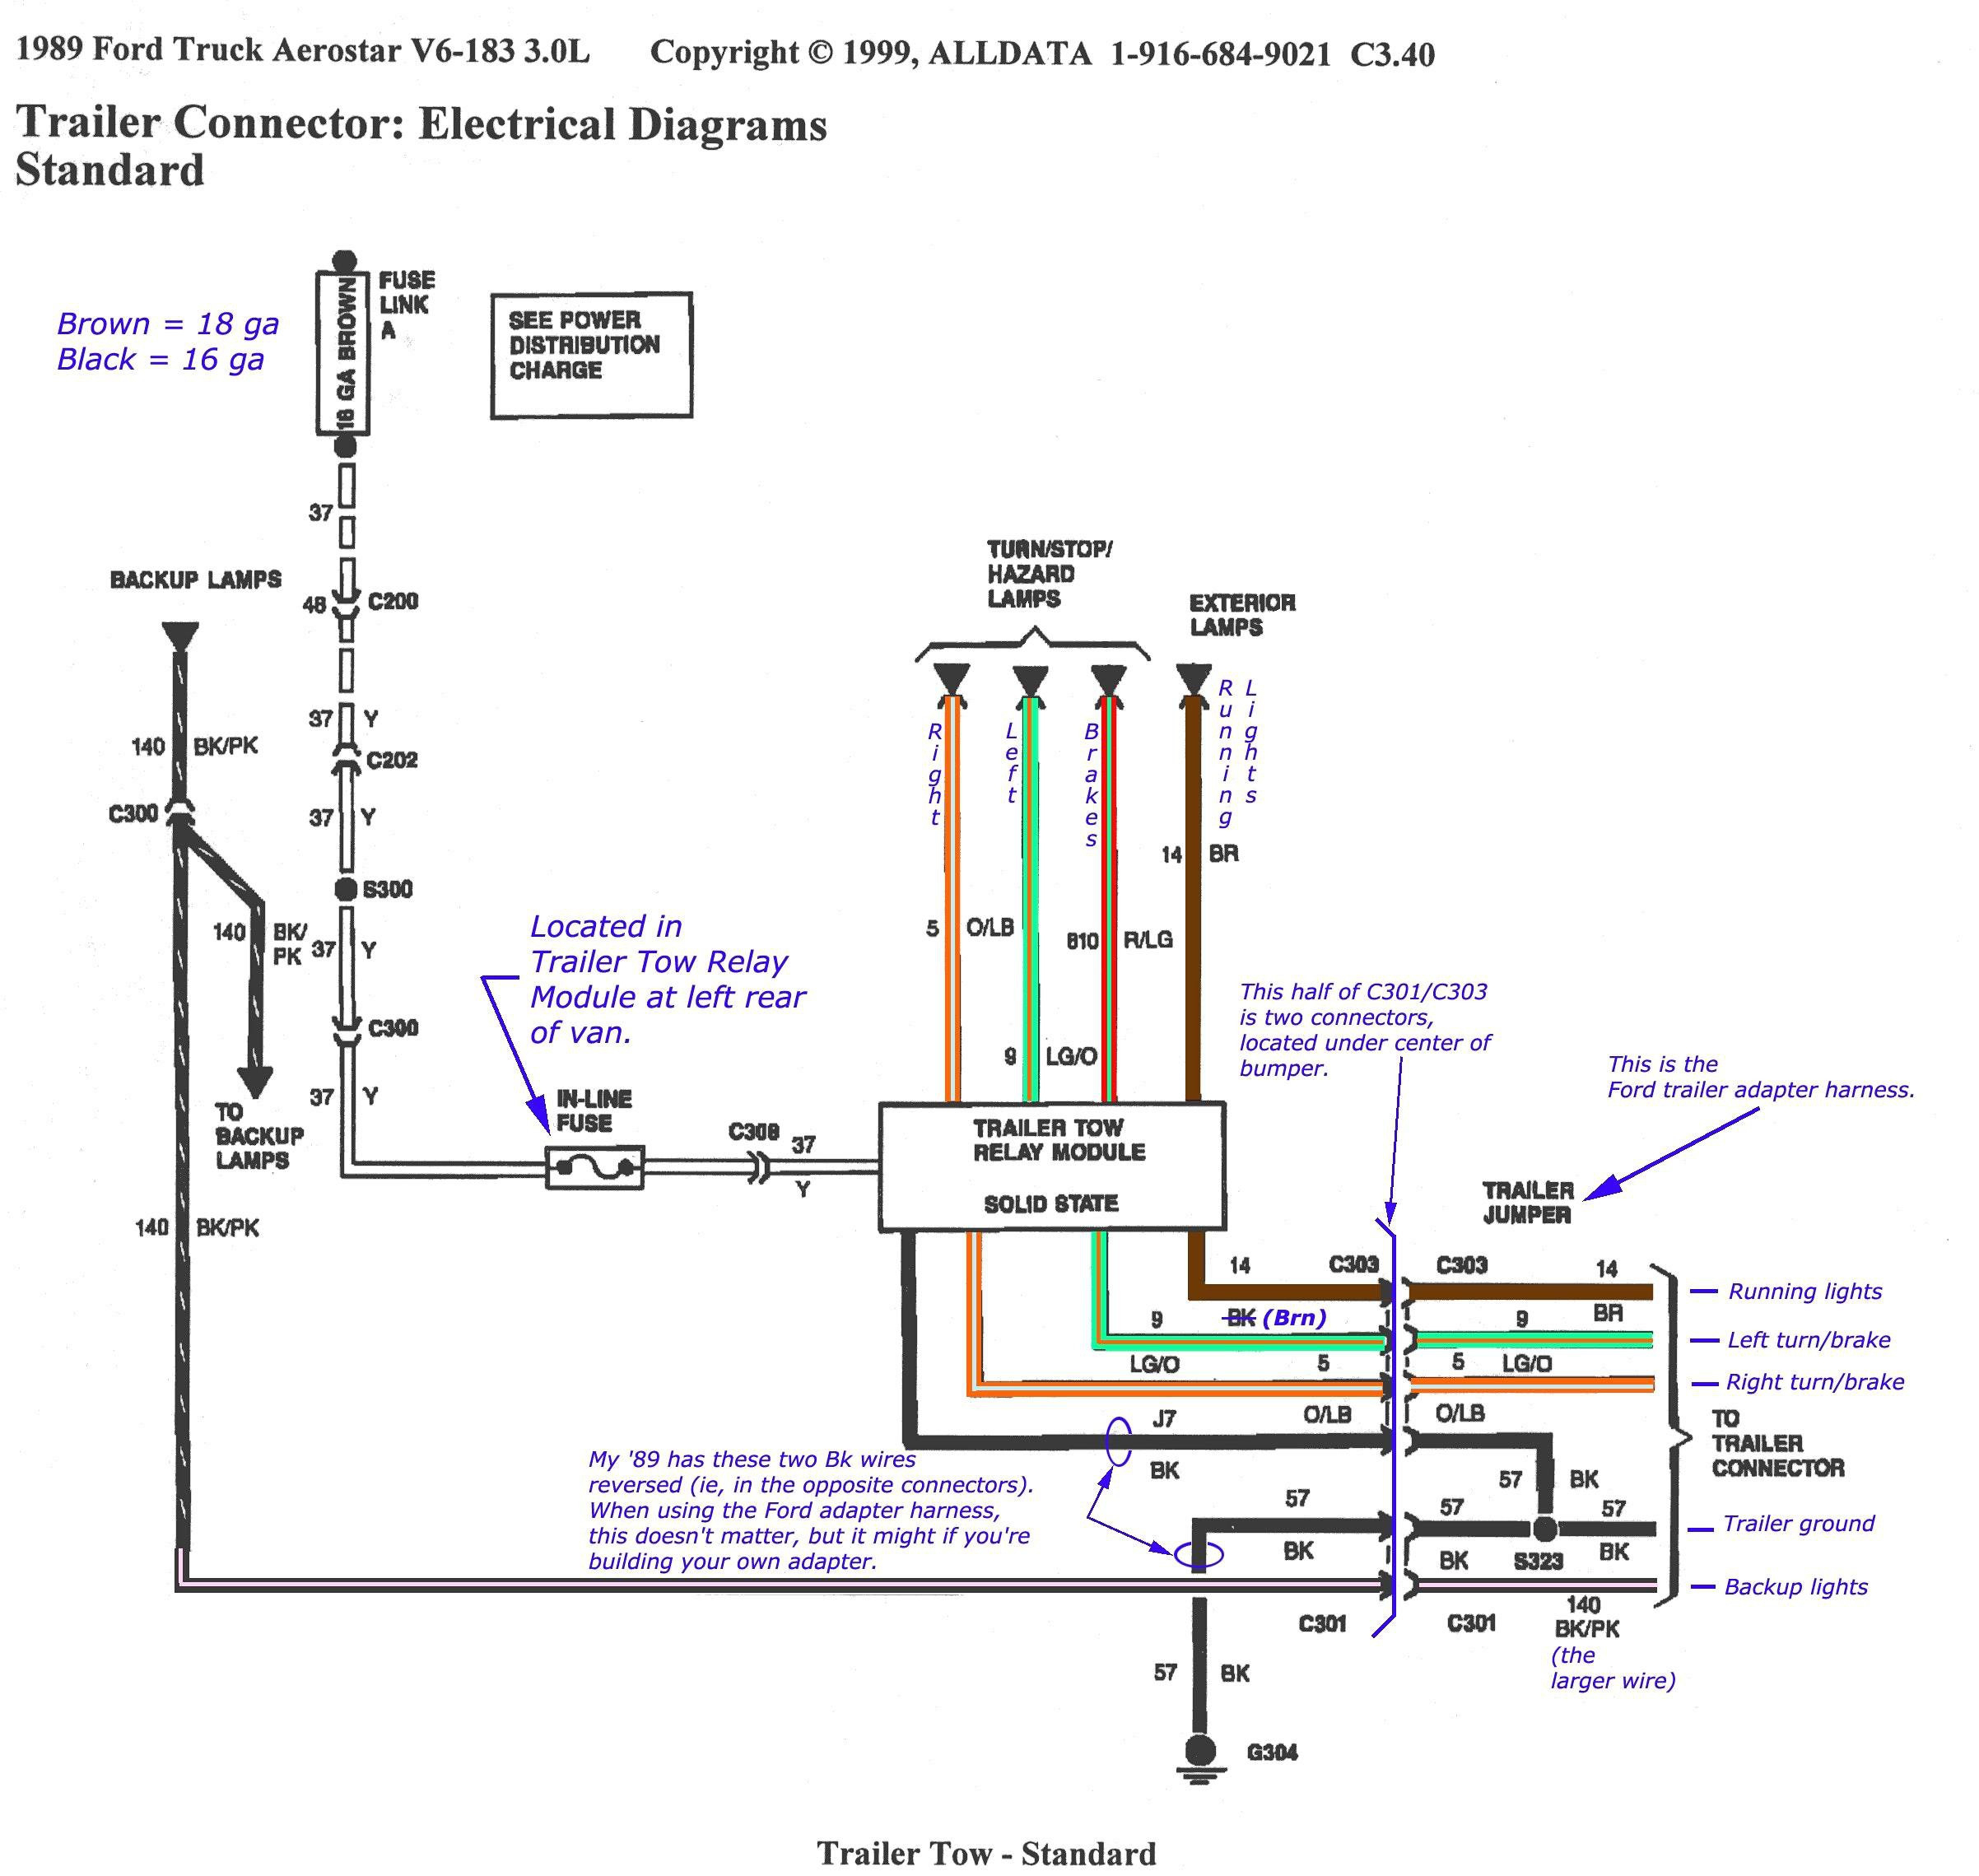 2008 Ford F 150 Trailer Wiring Diagram Wiring Diagram Explained A Explained A Led Illumina It